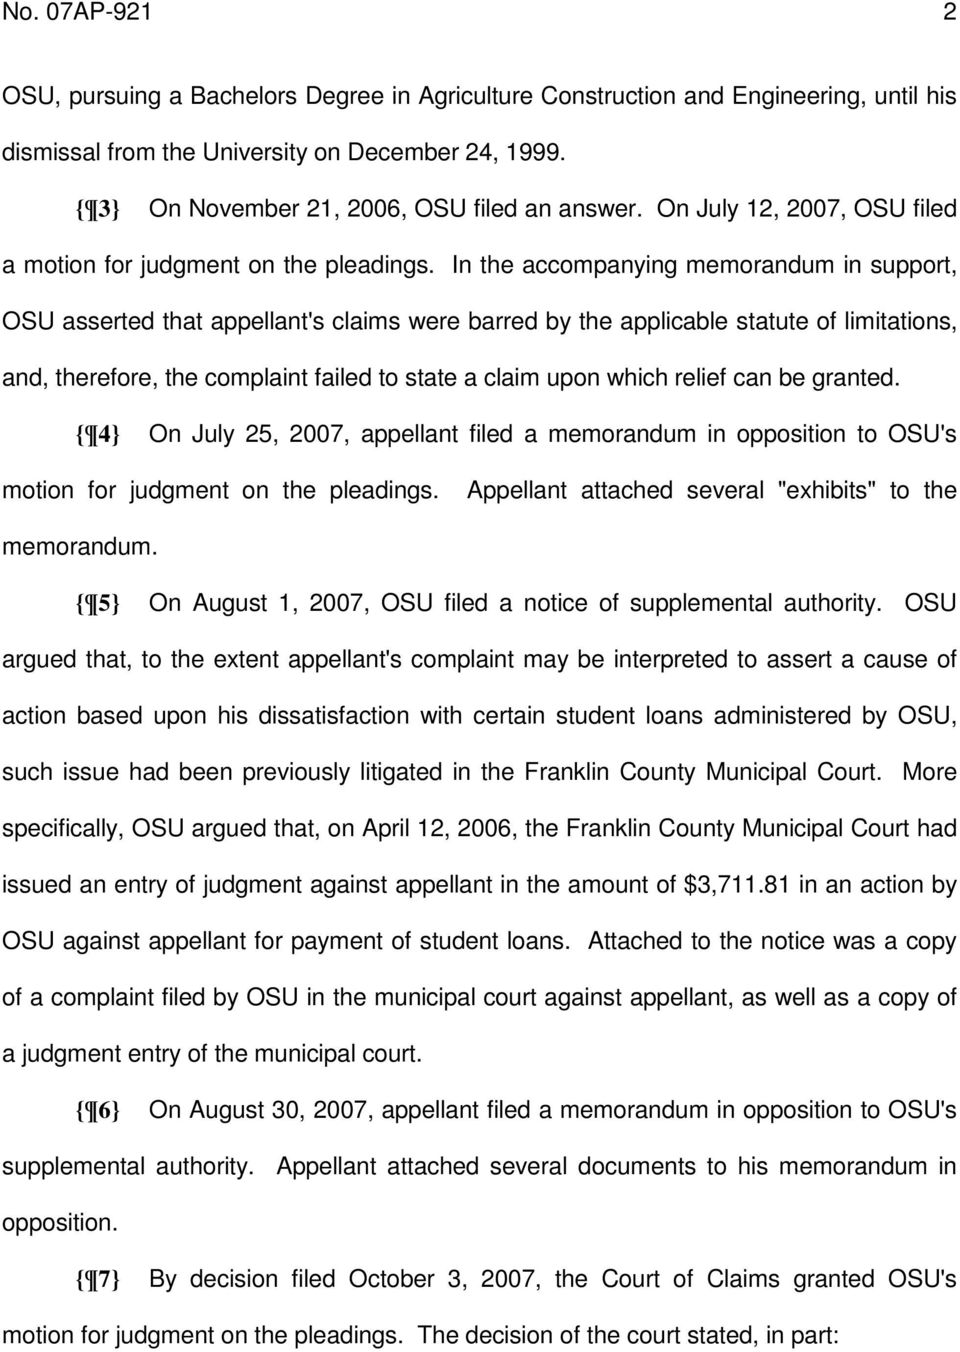 In the accompanying memorandum in support, OSU asserted that appellant's claims were barred by the applicable statute of limitations, and, therefore, the complaint failed to state a claim upon which